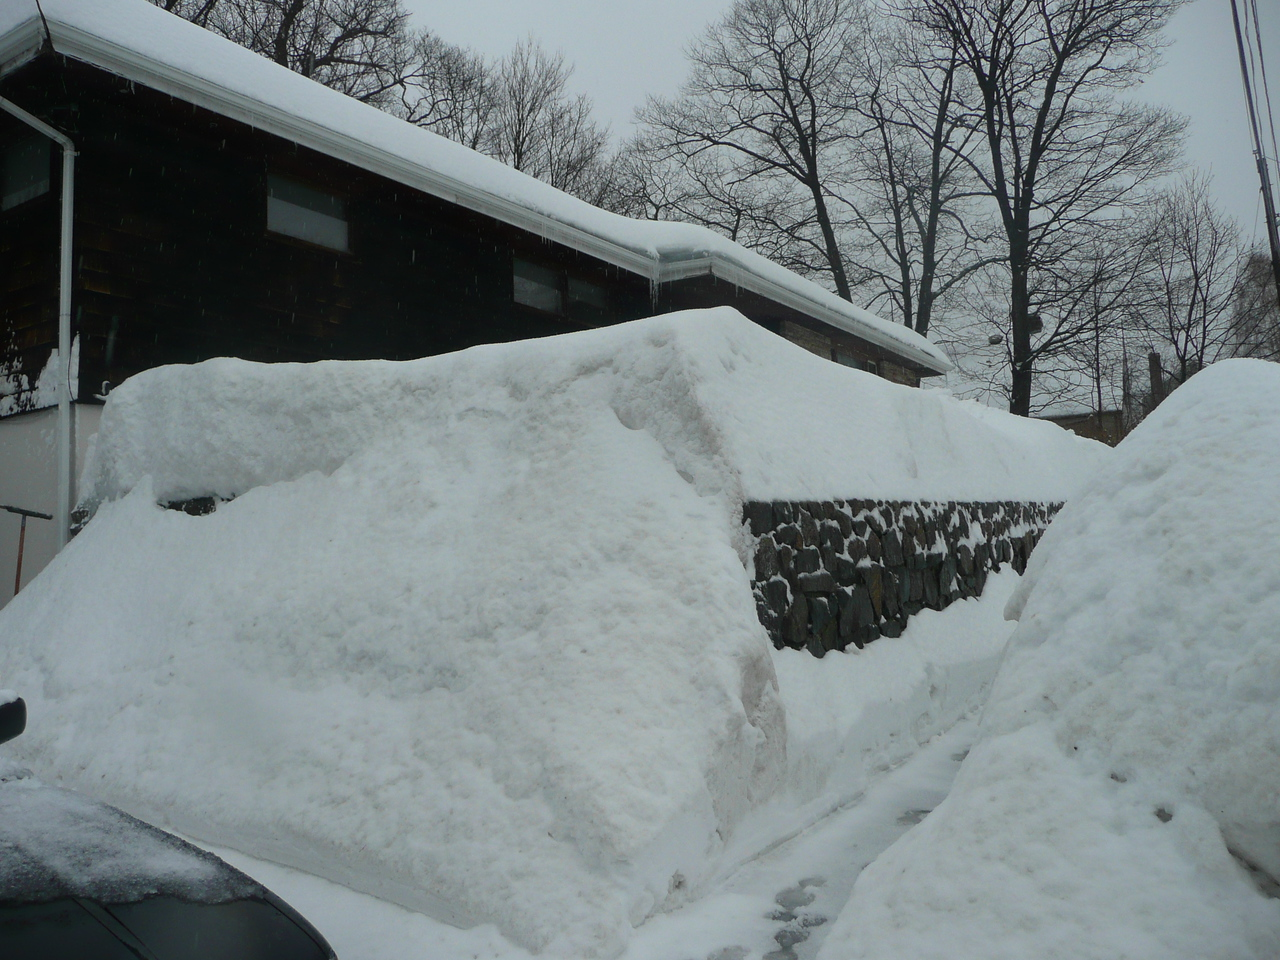 February 1-2, 2011. 10 inches fell over two days then changed to sleet (20+ inches had been forecast)